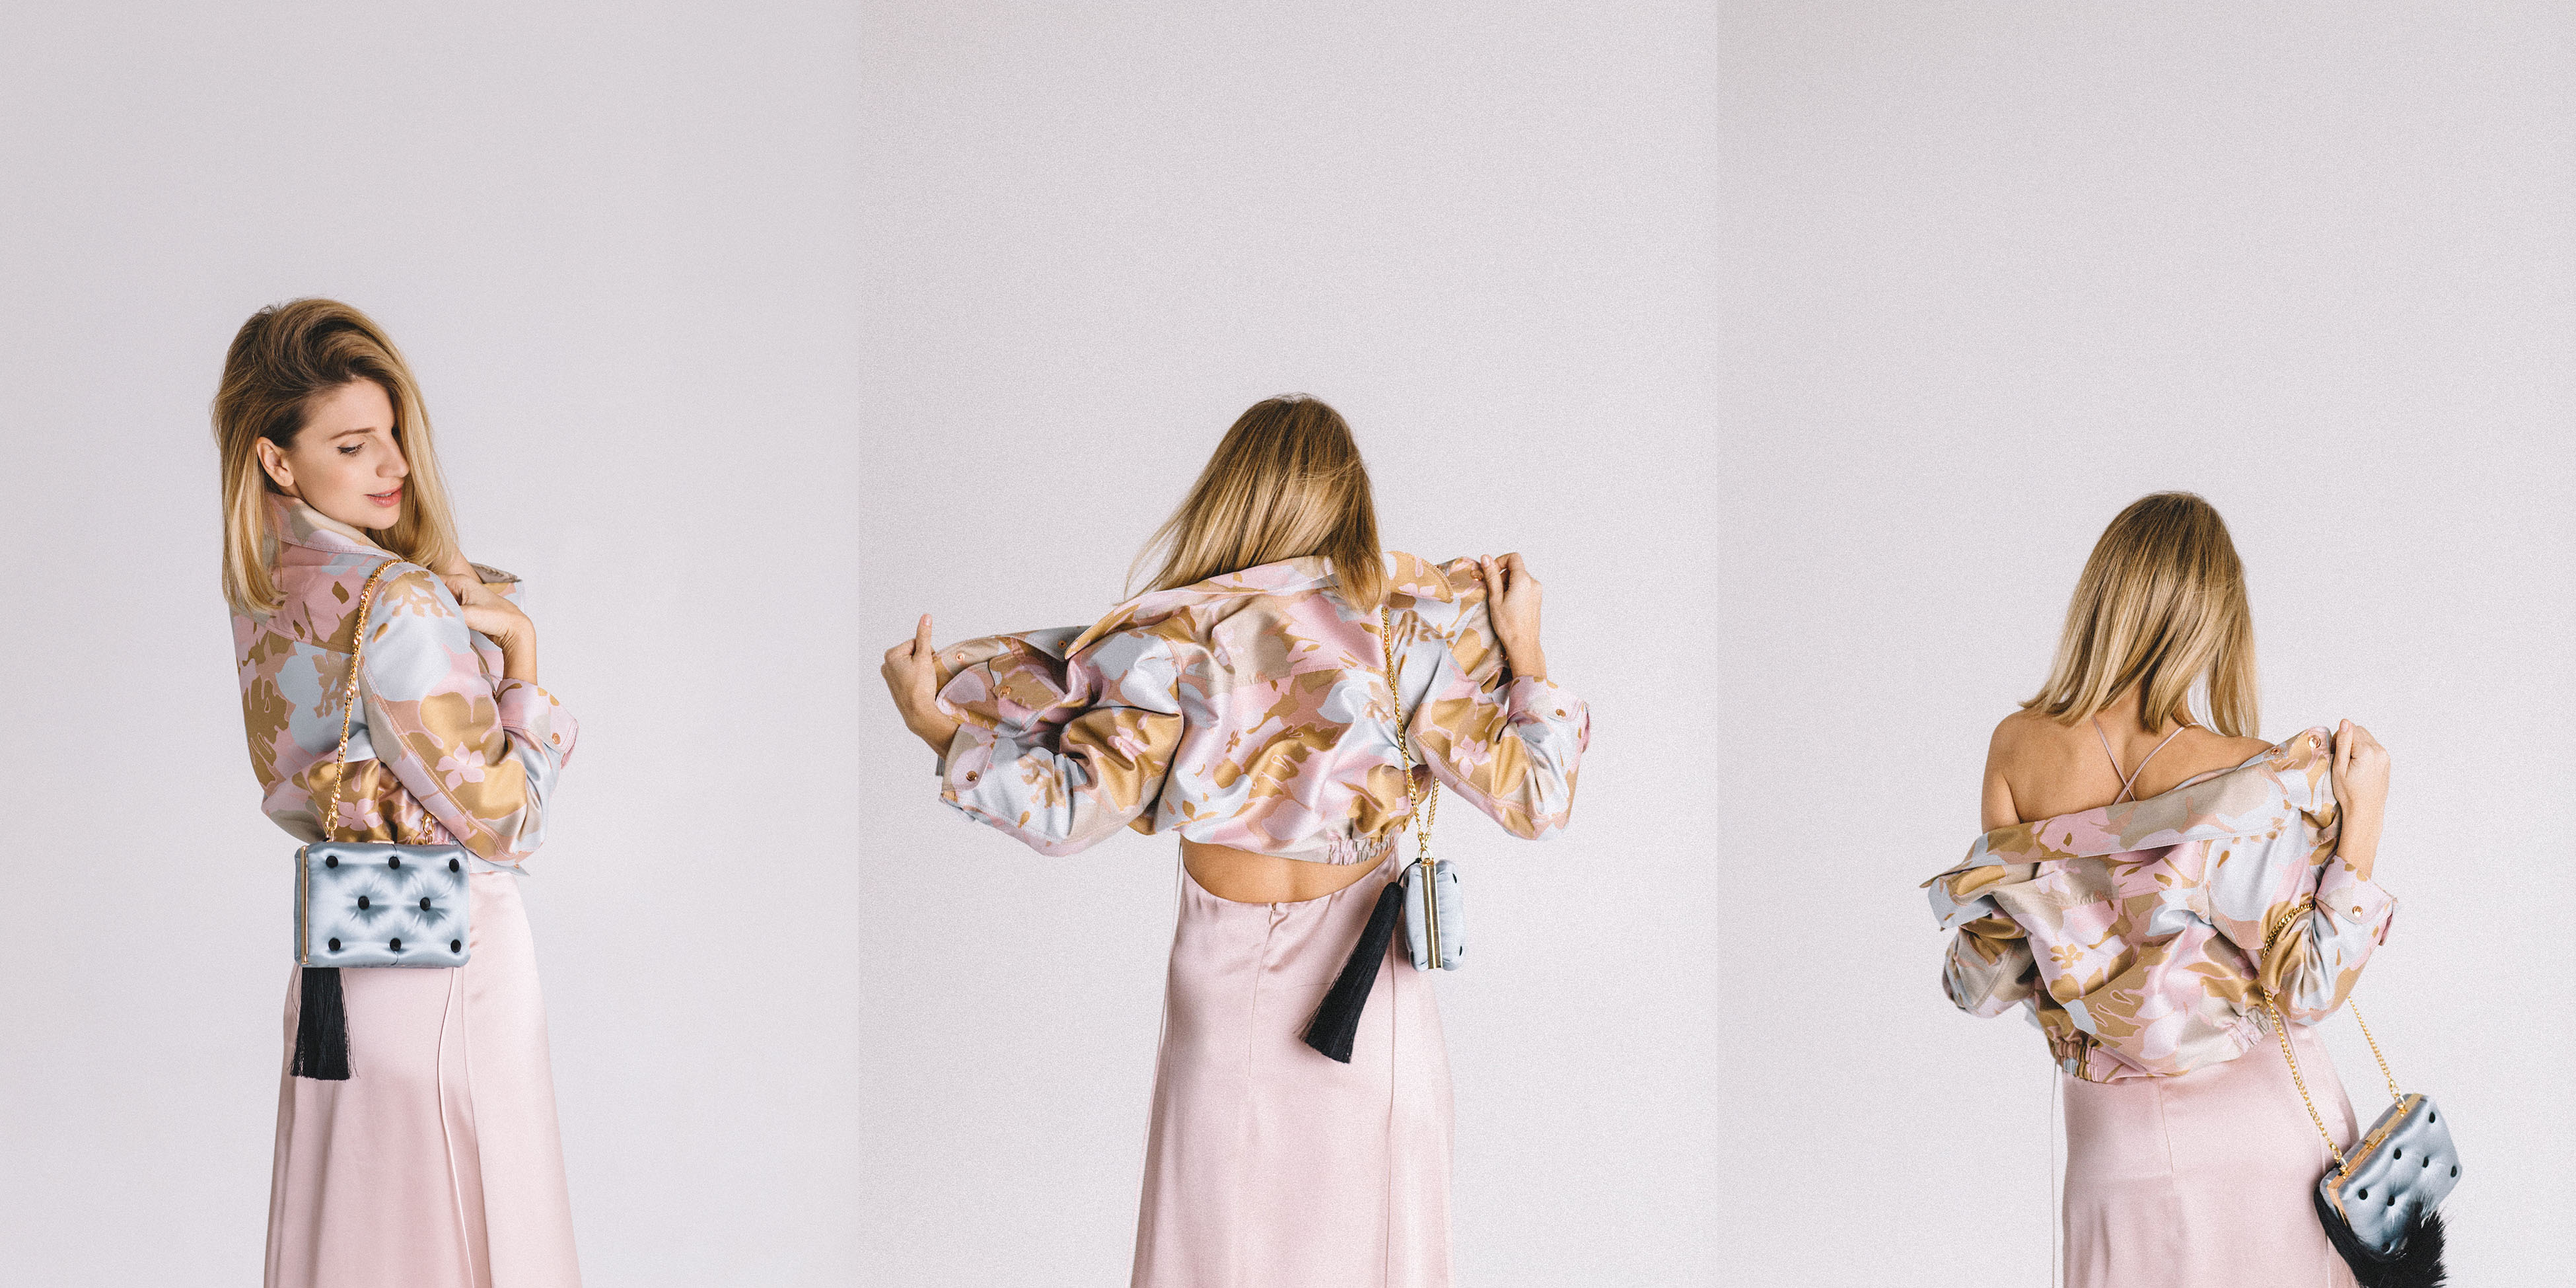 The Coat by Katya Silchenko collaboration with Laimushka, light blue evening silk purse with a tassel